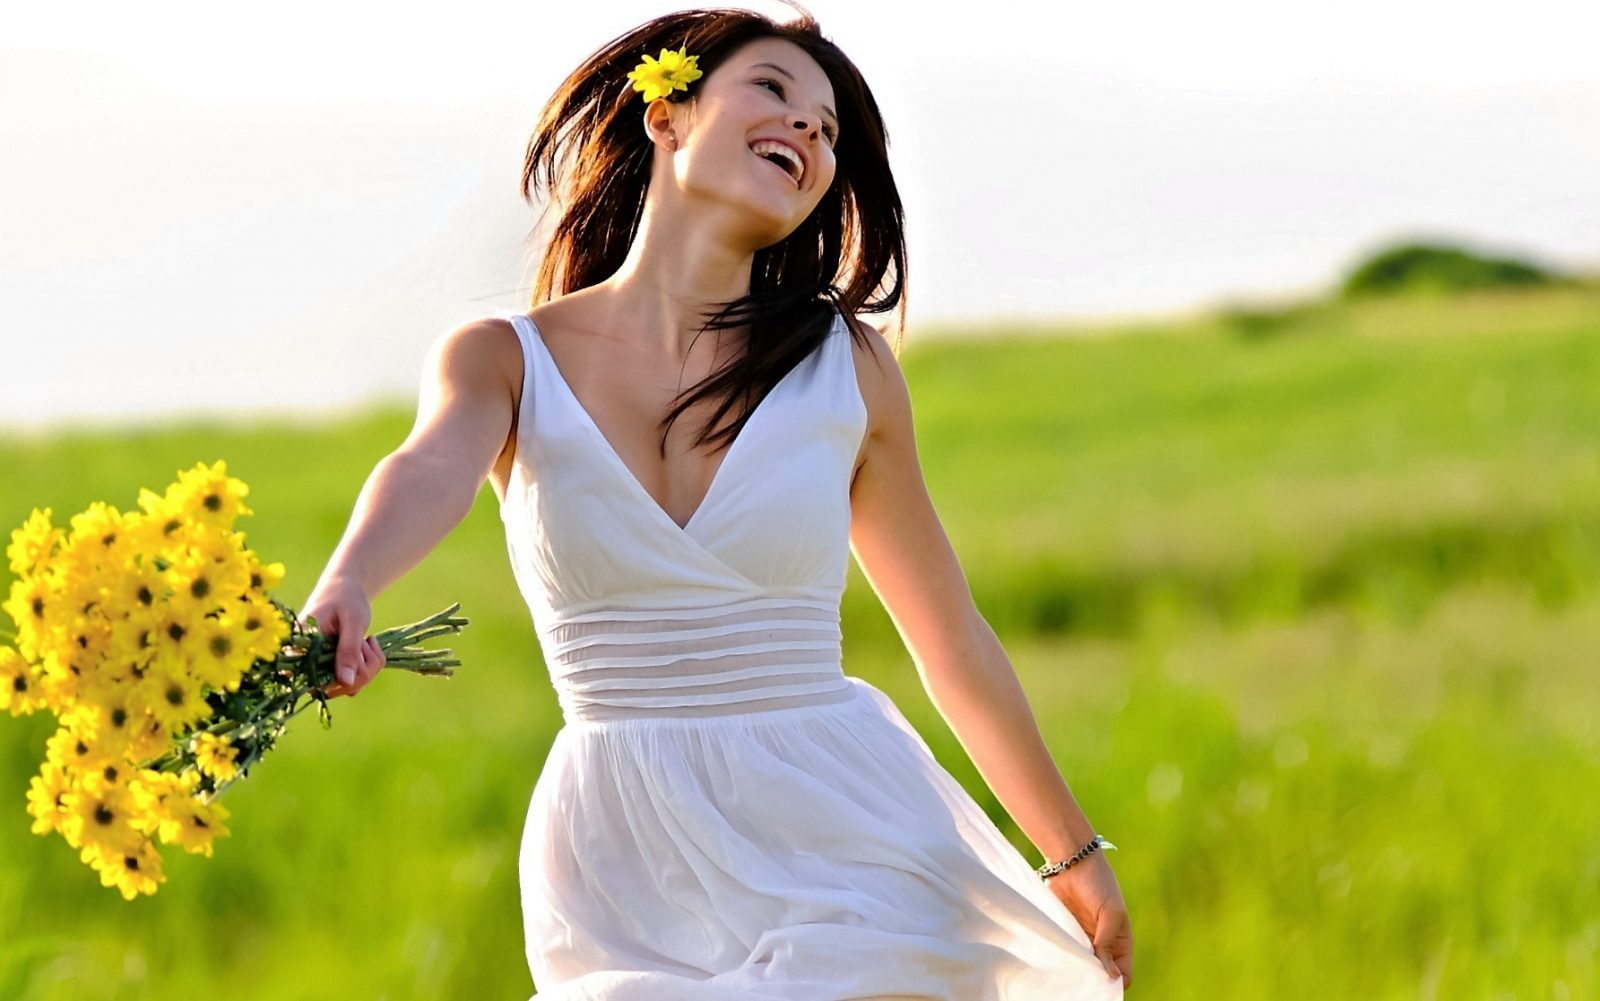 Beautiful-girl-so-happy-with-smile.jpg